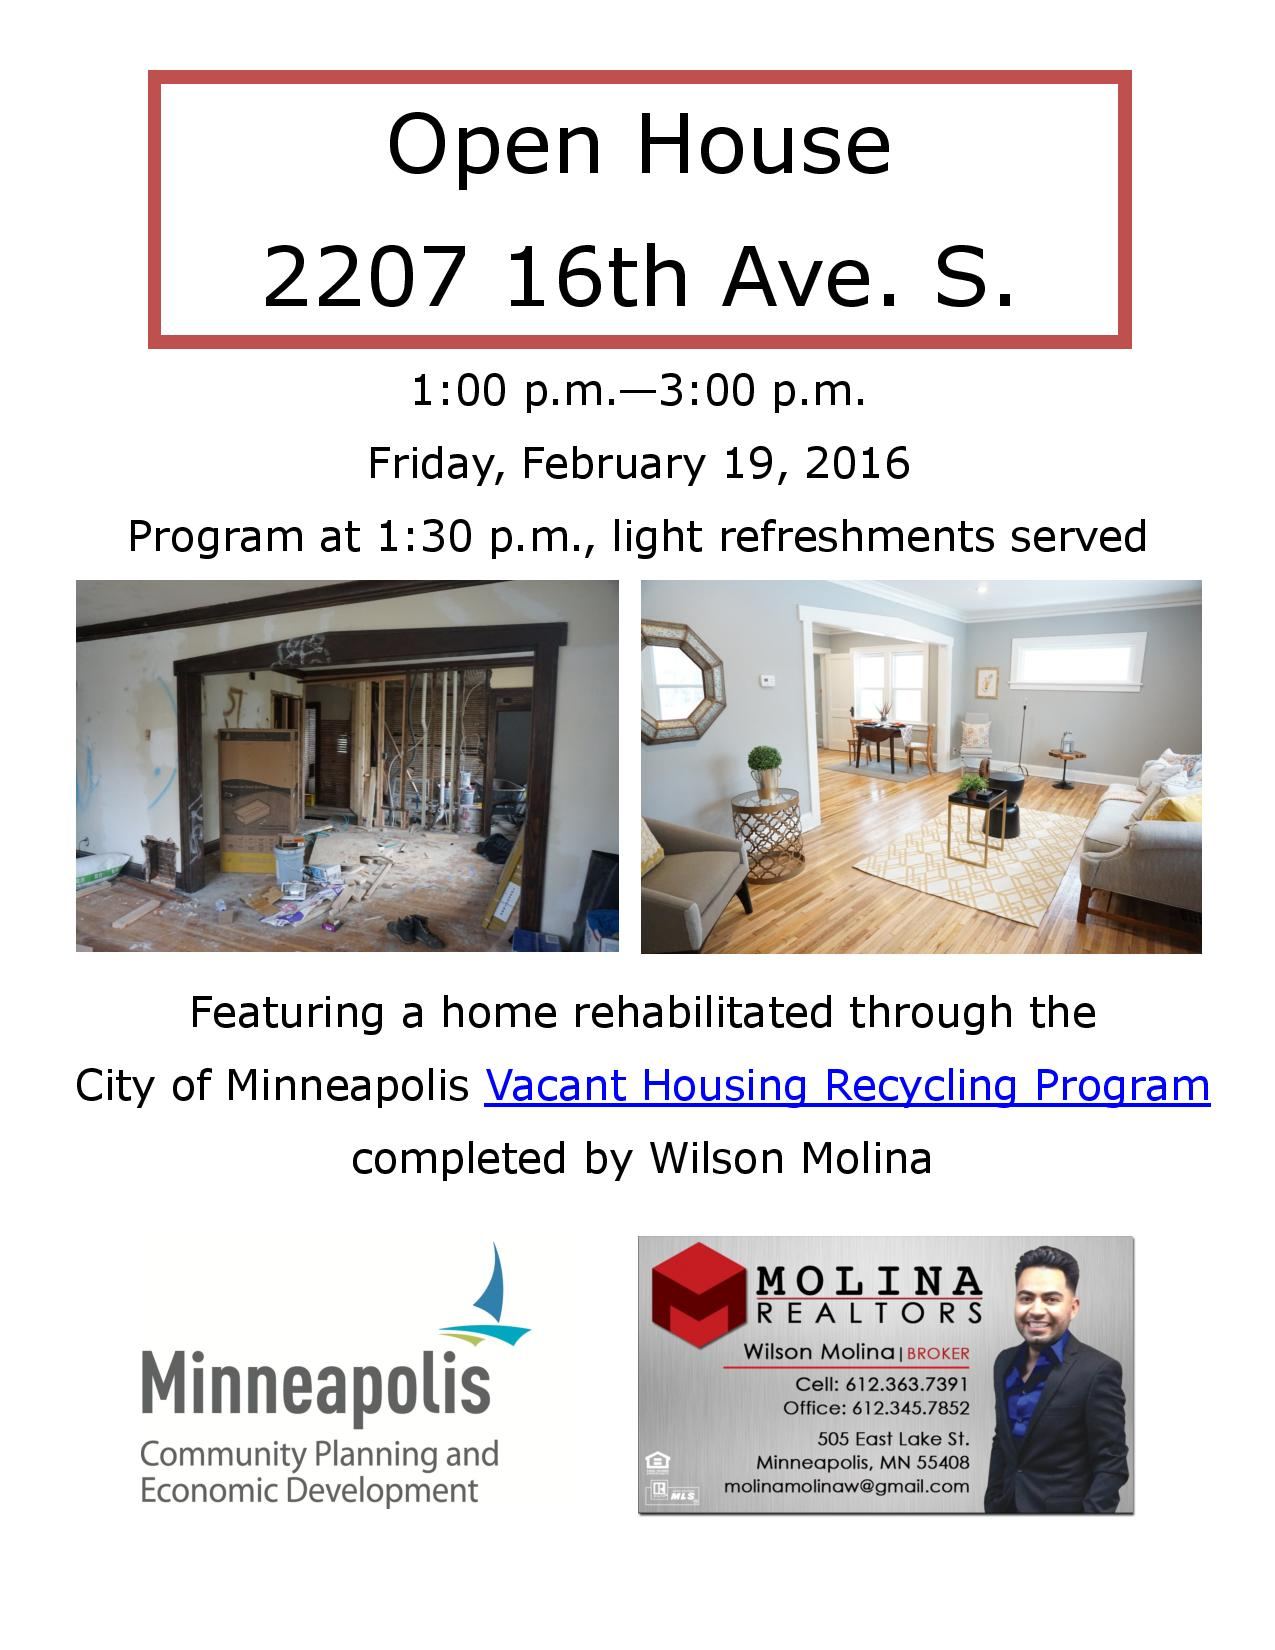 Open_House_flier_2207_16th_Ave_S-page-001.jpg